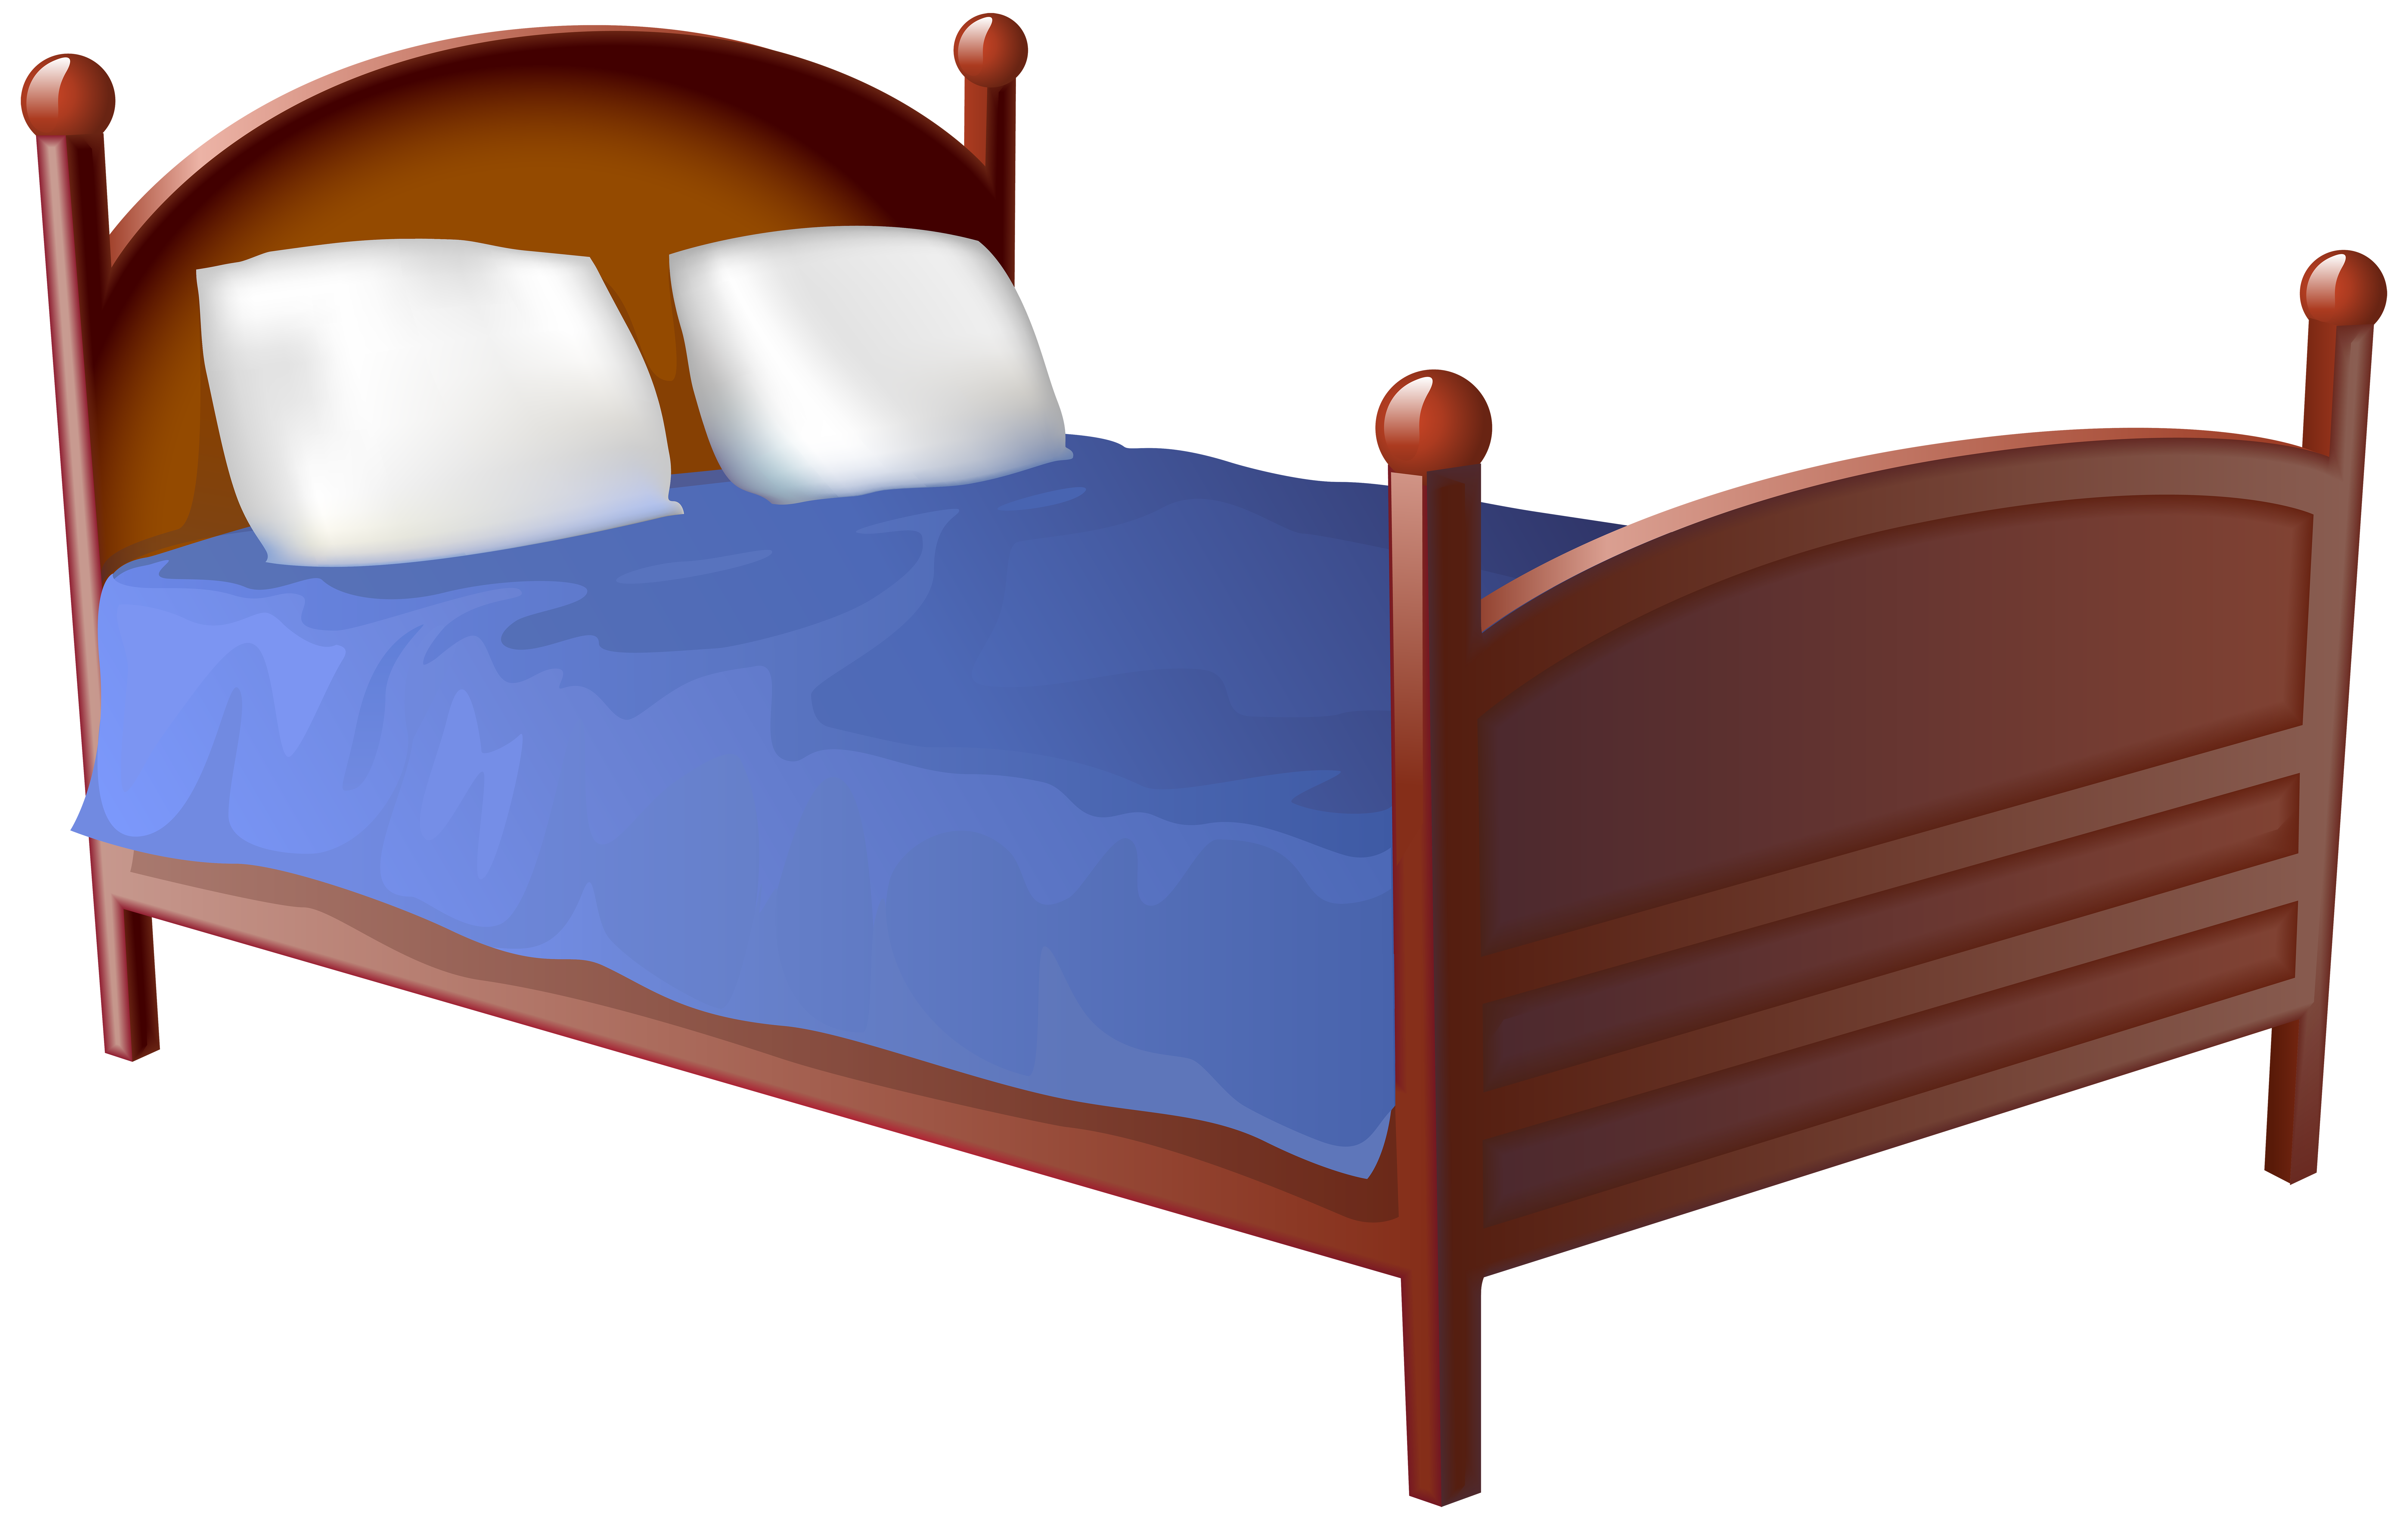 Bed Transparent Png Clip Art Image Gallery Yopriceville High Quality Images And Transparent Png Free Clipart Bed Clipart Bed Clip Art